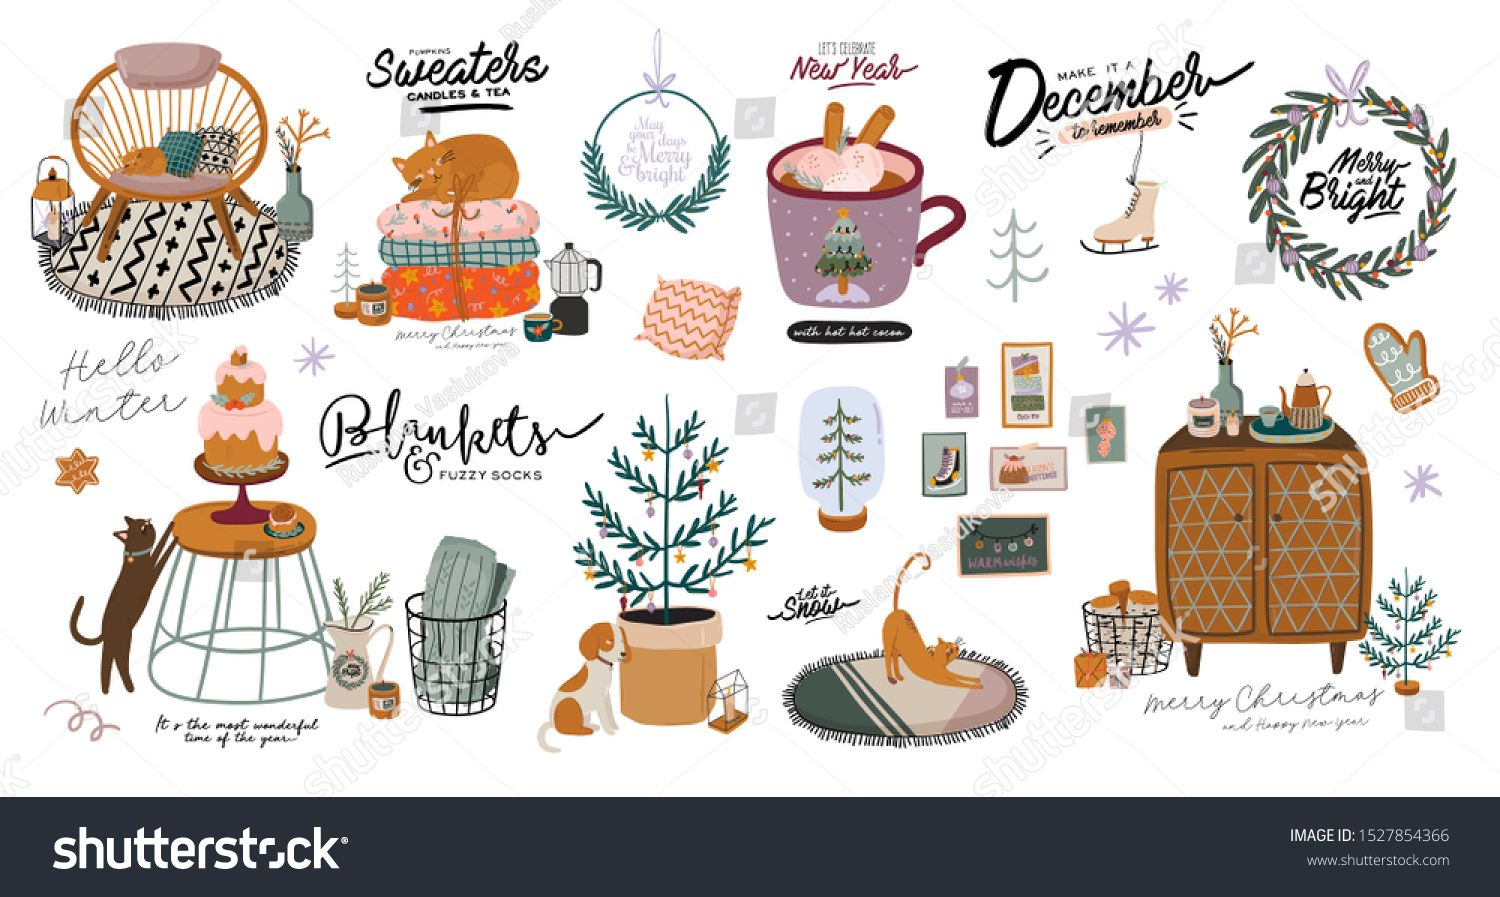 Scandinavian interior with December home decorations  wreath cat tree gift candles table Cozy Winter holiday season Cute illustration and Christmas typography in Hygge st...